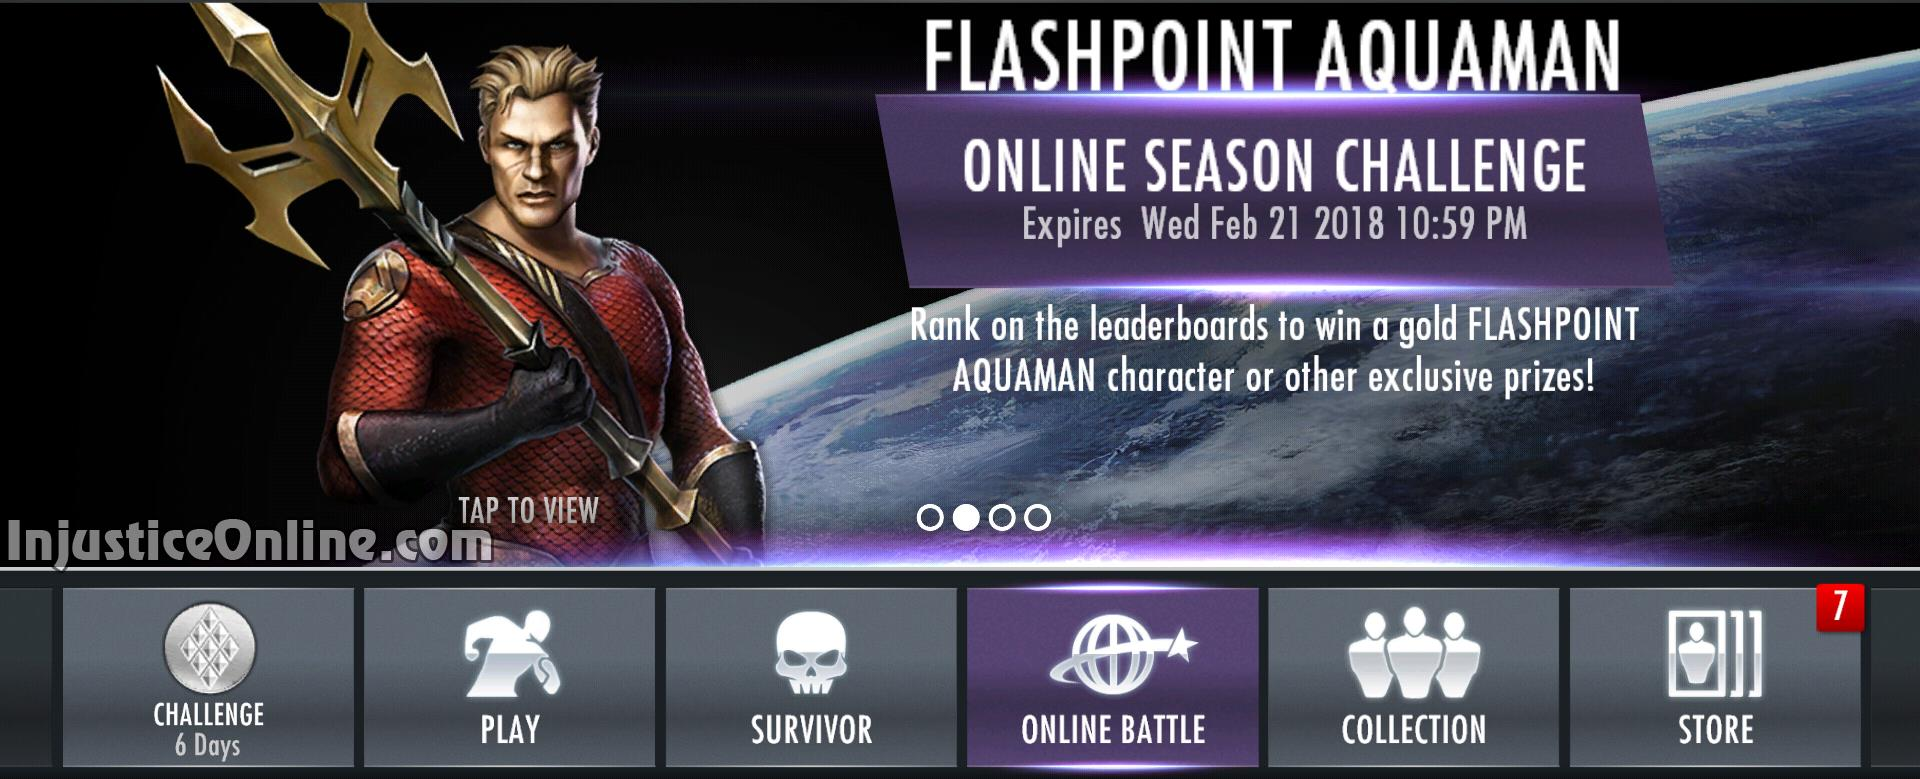 Current And Next Challenges – Injustice Mobile | InjusticeOnline